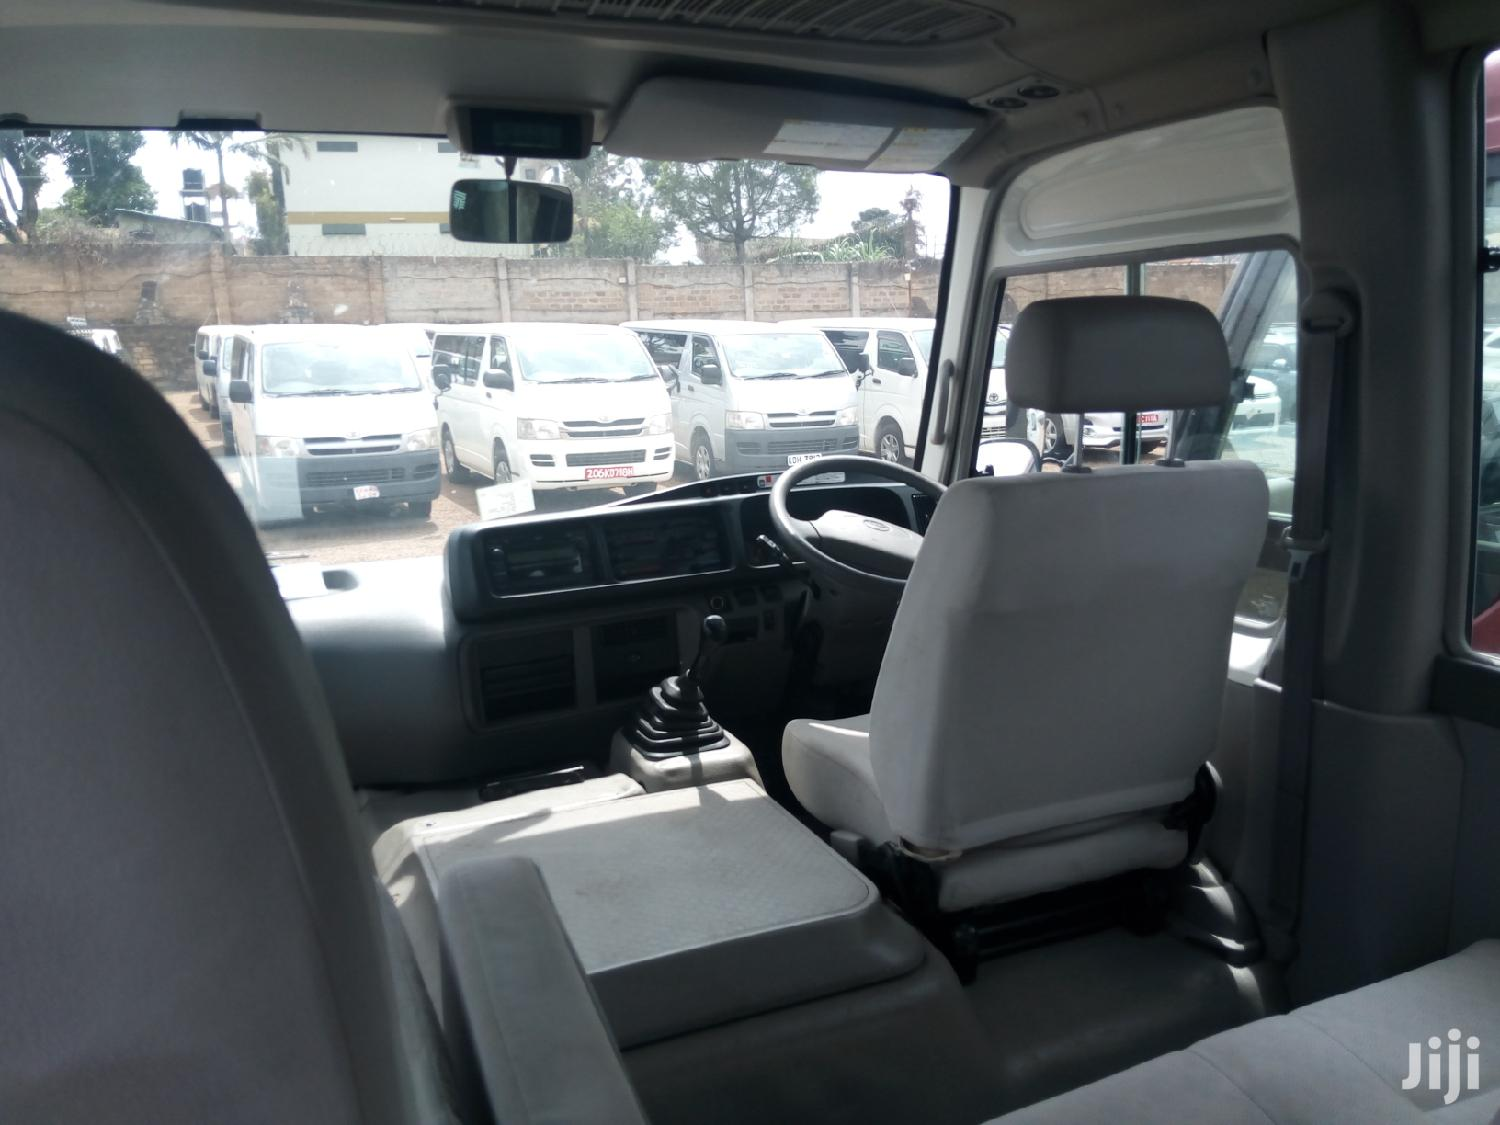 Toyota Coaster | Buses & Microbuses for sale in Kampala, Central Region, Uganda